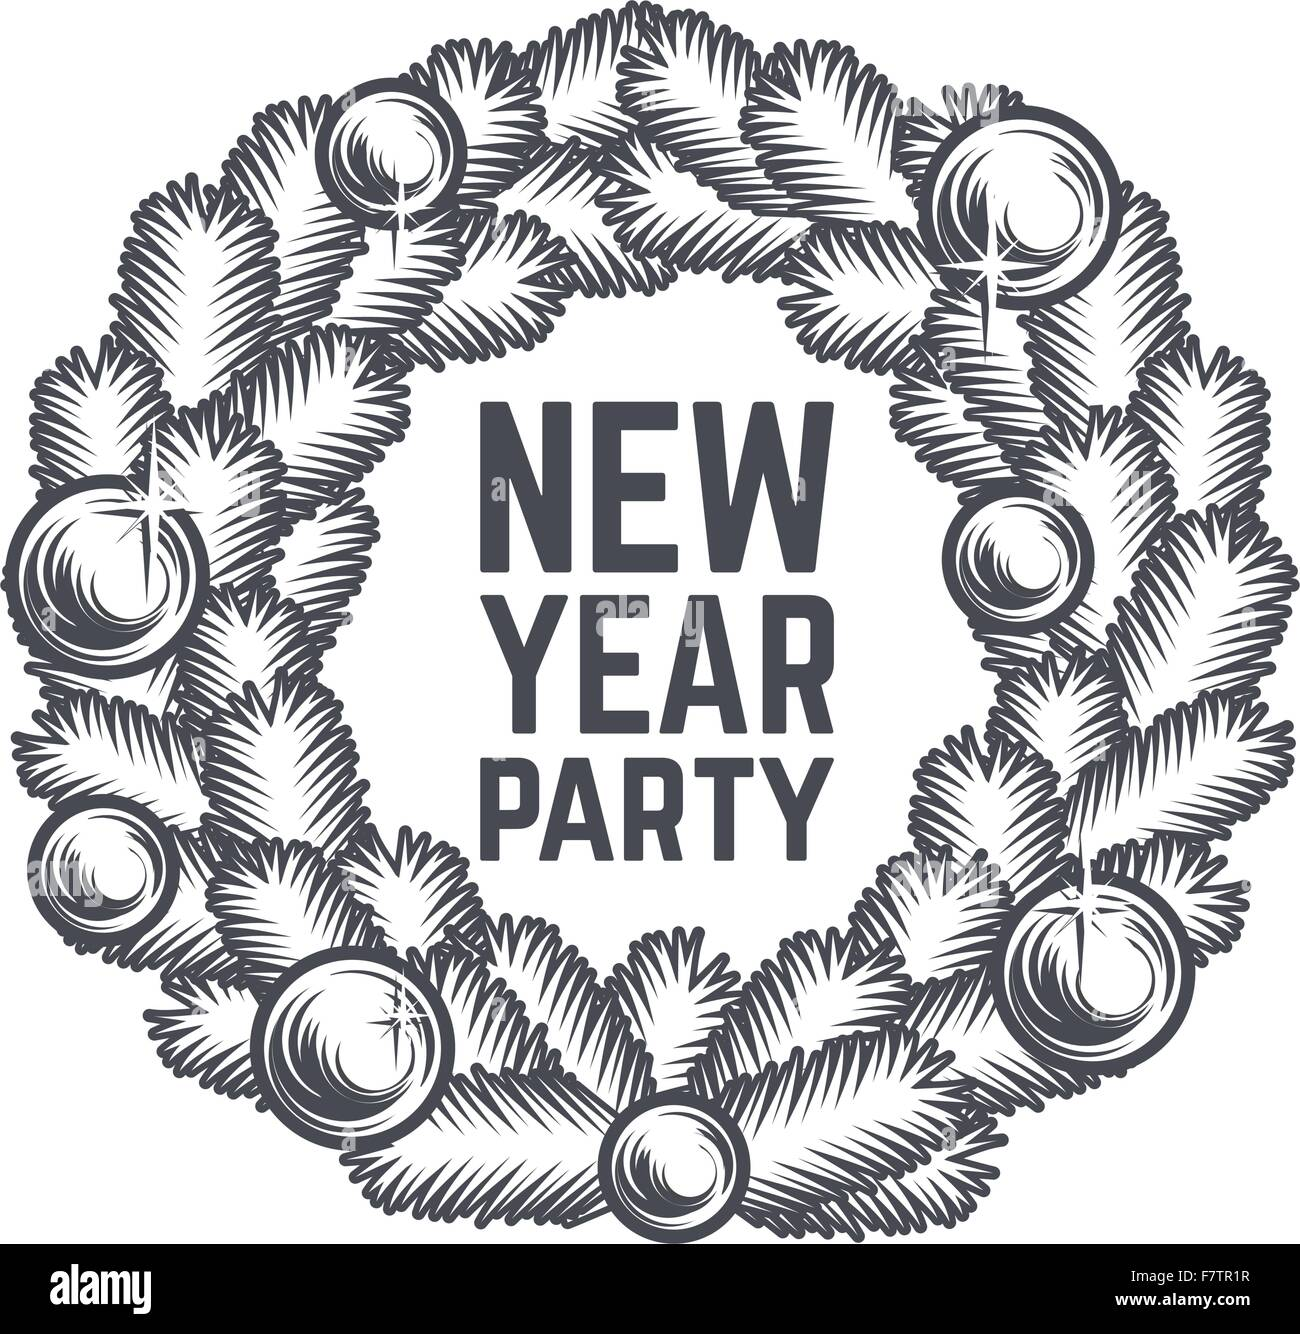 merry christmas wreath vector design vintage happy new year postcard x mas banner for party sale print december poster or badge